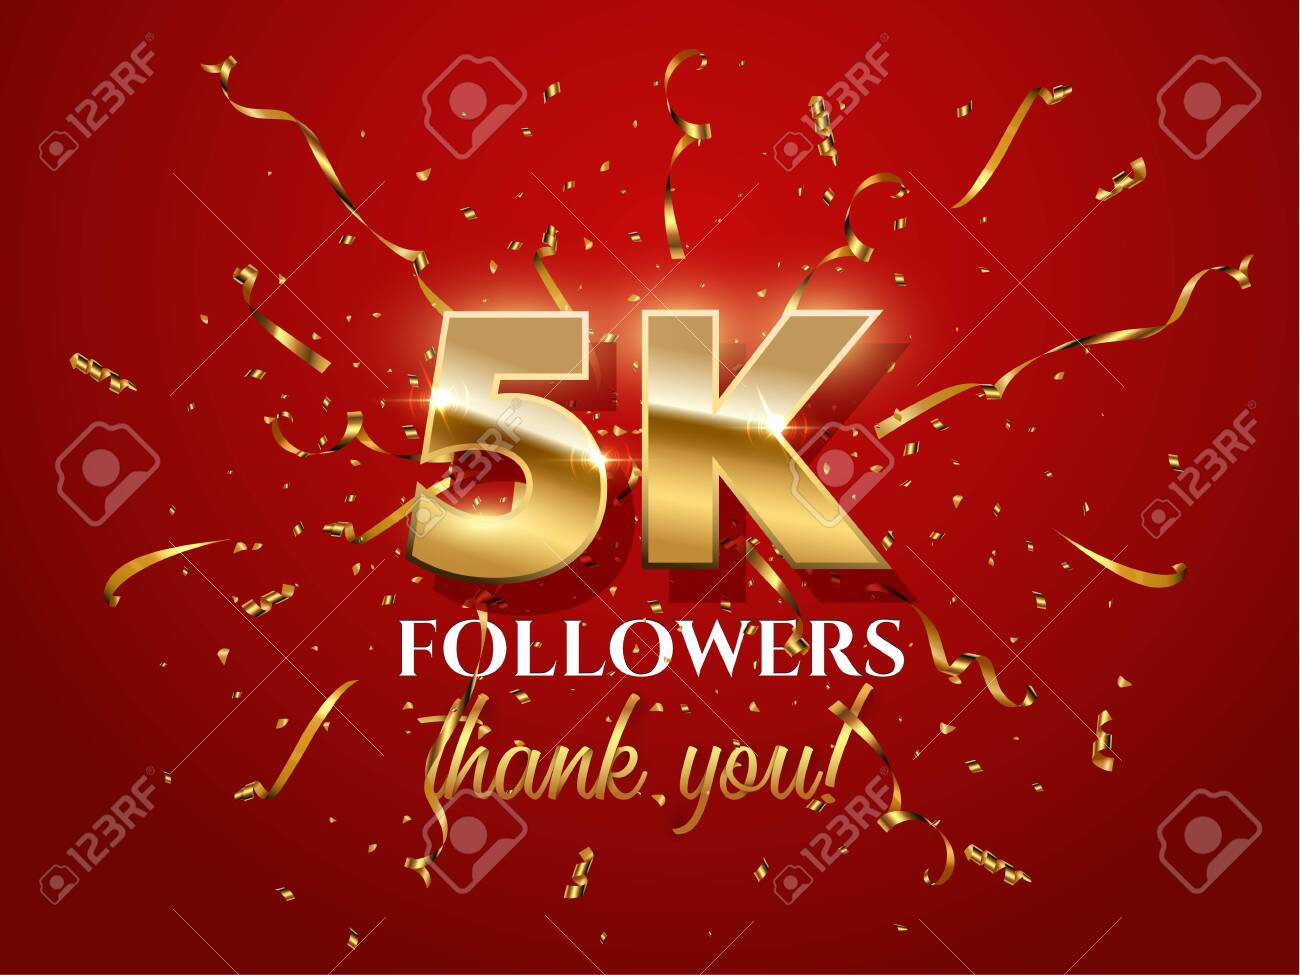 5000 followers celebration vector banner with text. Social media achievement poster. 5k followers thank you lettering. Golden sparkling confetti ribbons. Shiny gratitude text on red gradient backdrop - 122902652